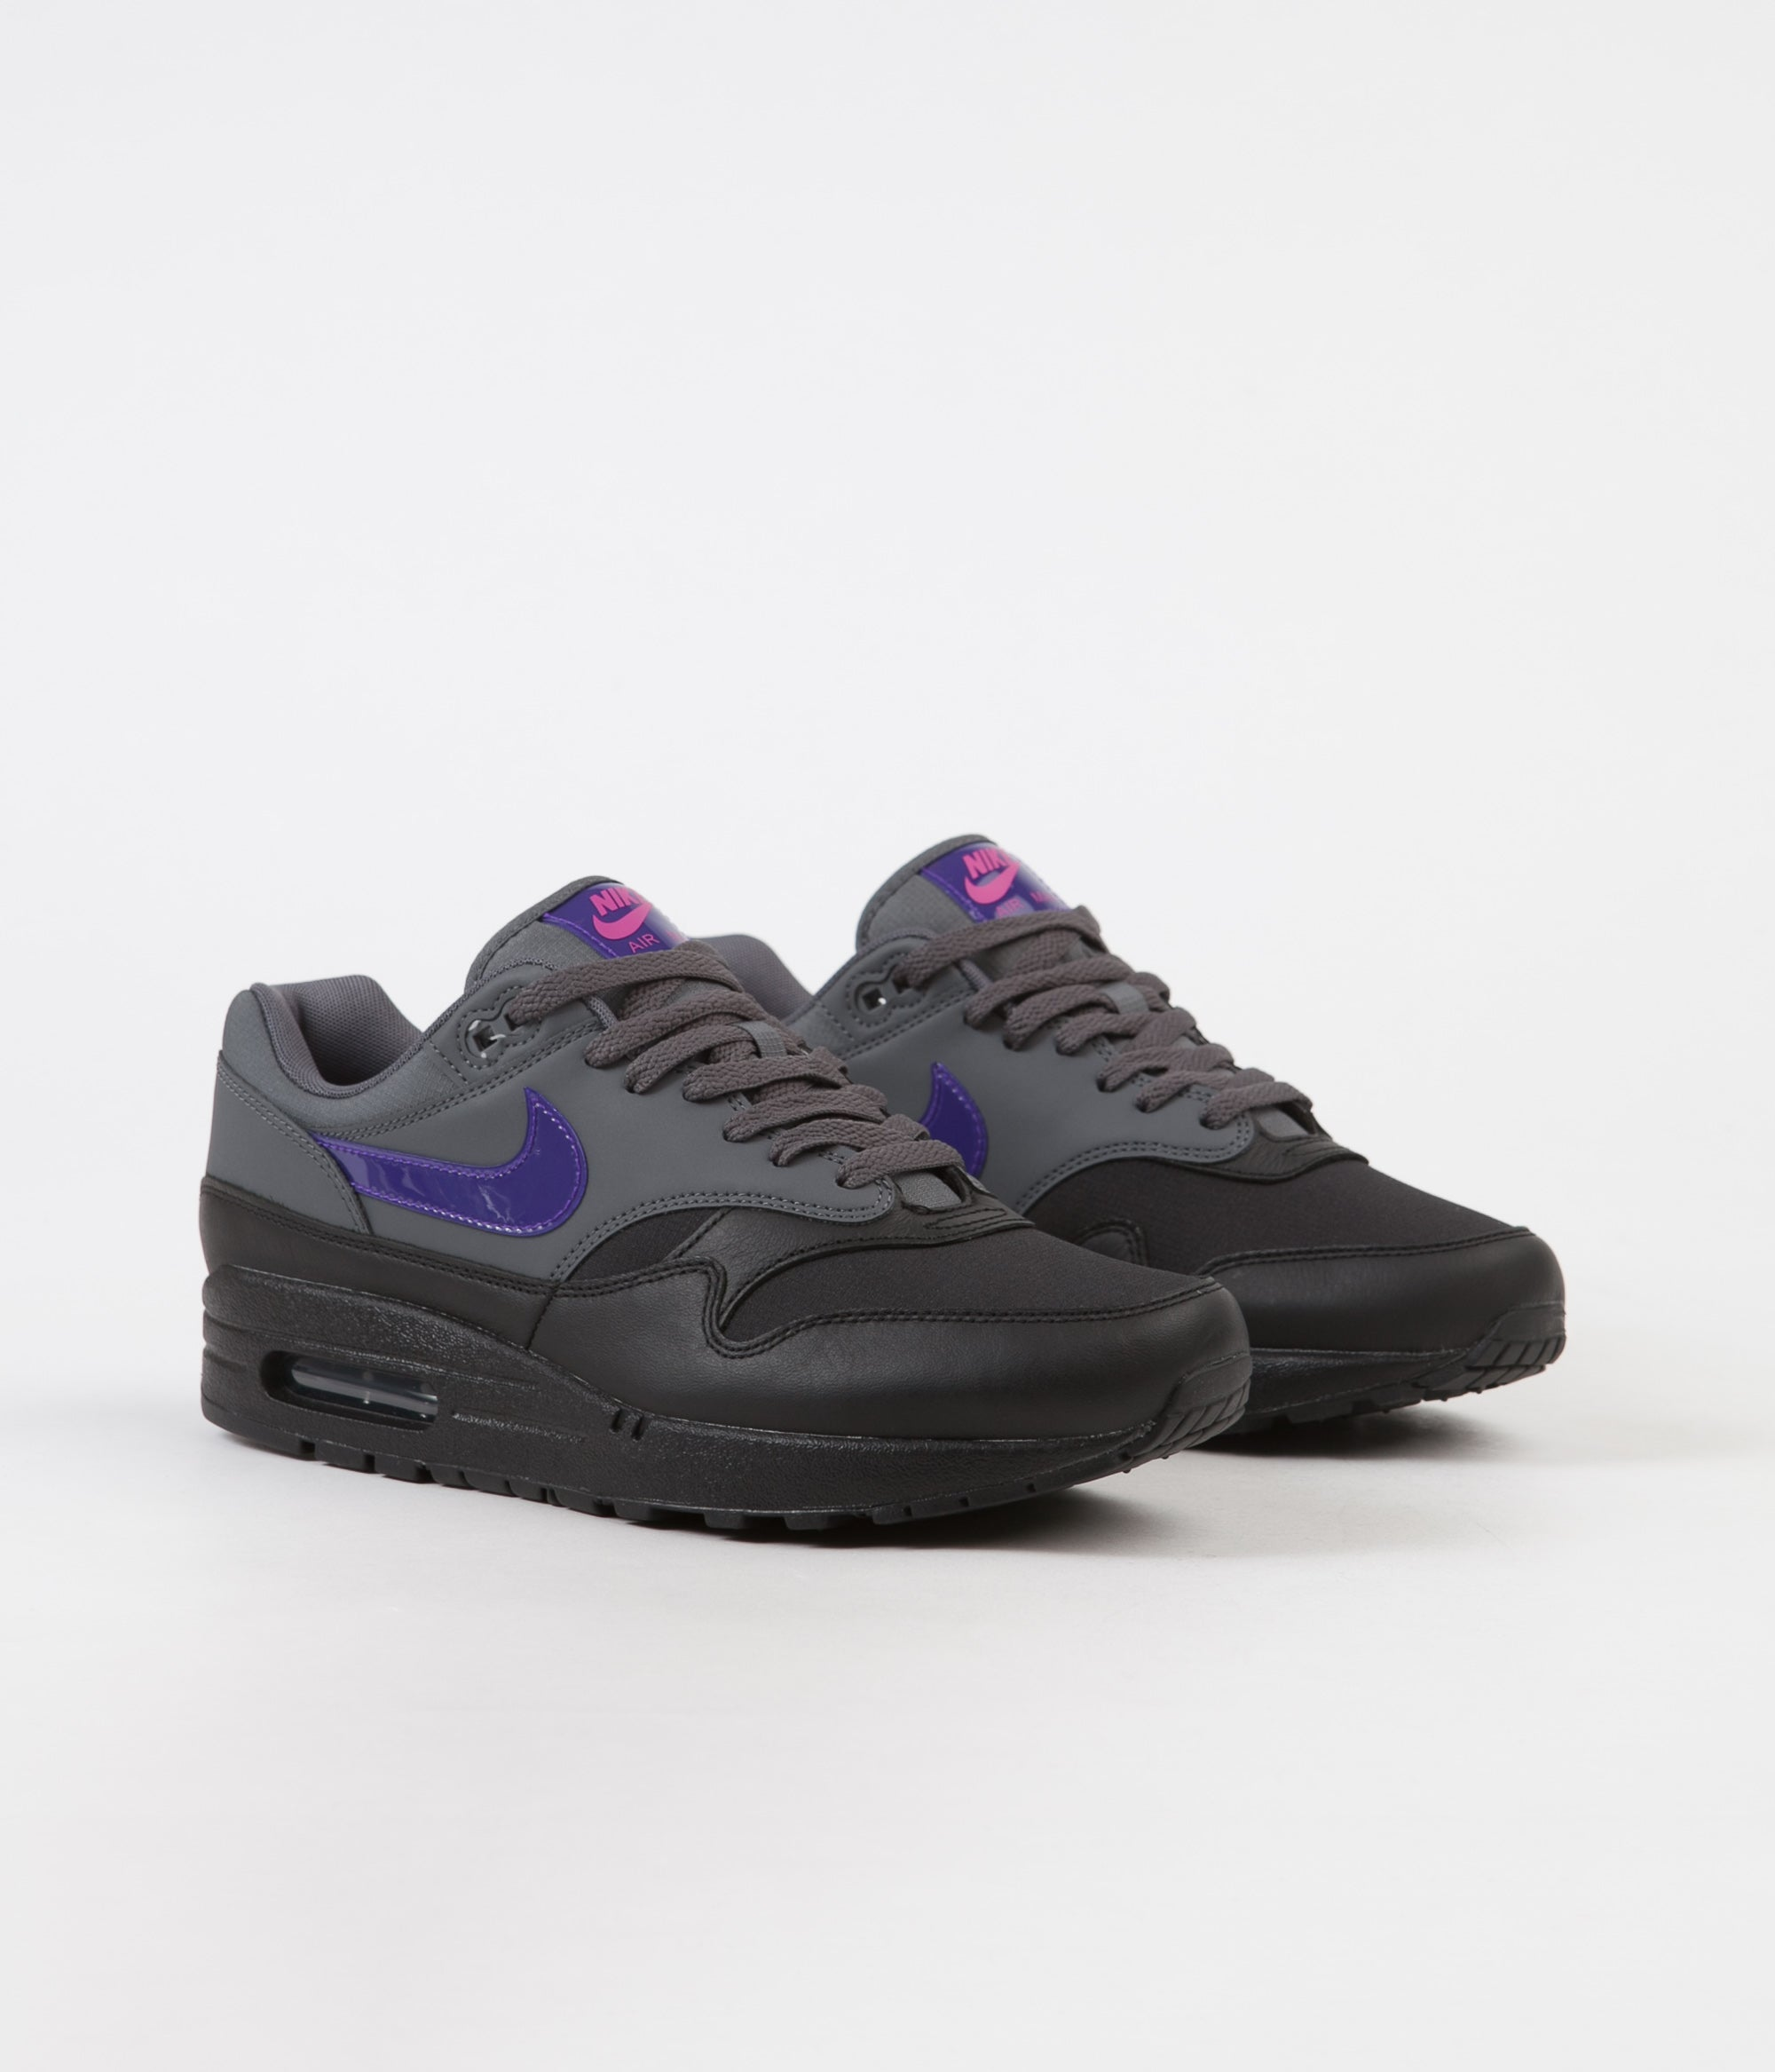 2634631294 ... Nike Air Max 1 Shoes - Dark Grey / Fierce Purple - Black - Pink Blast  ...